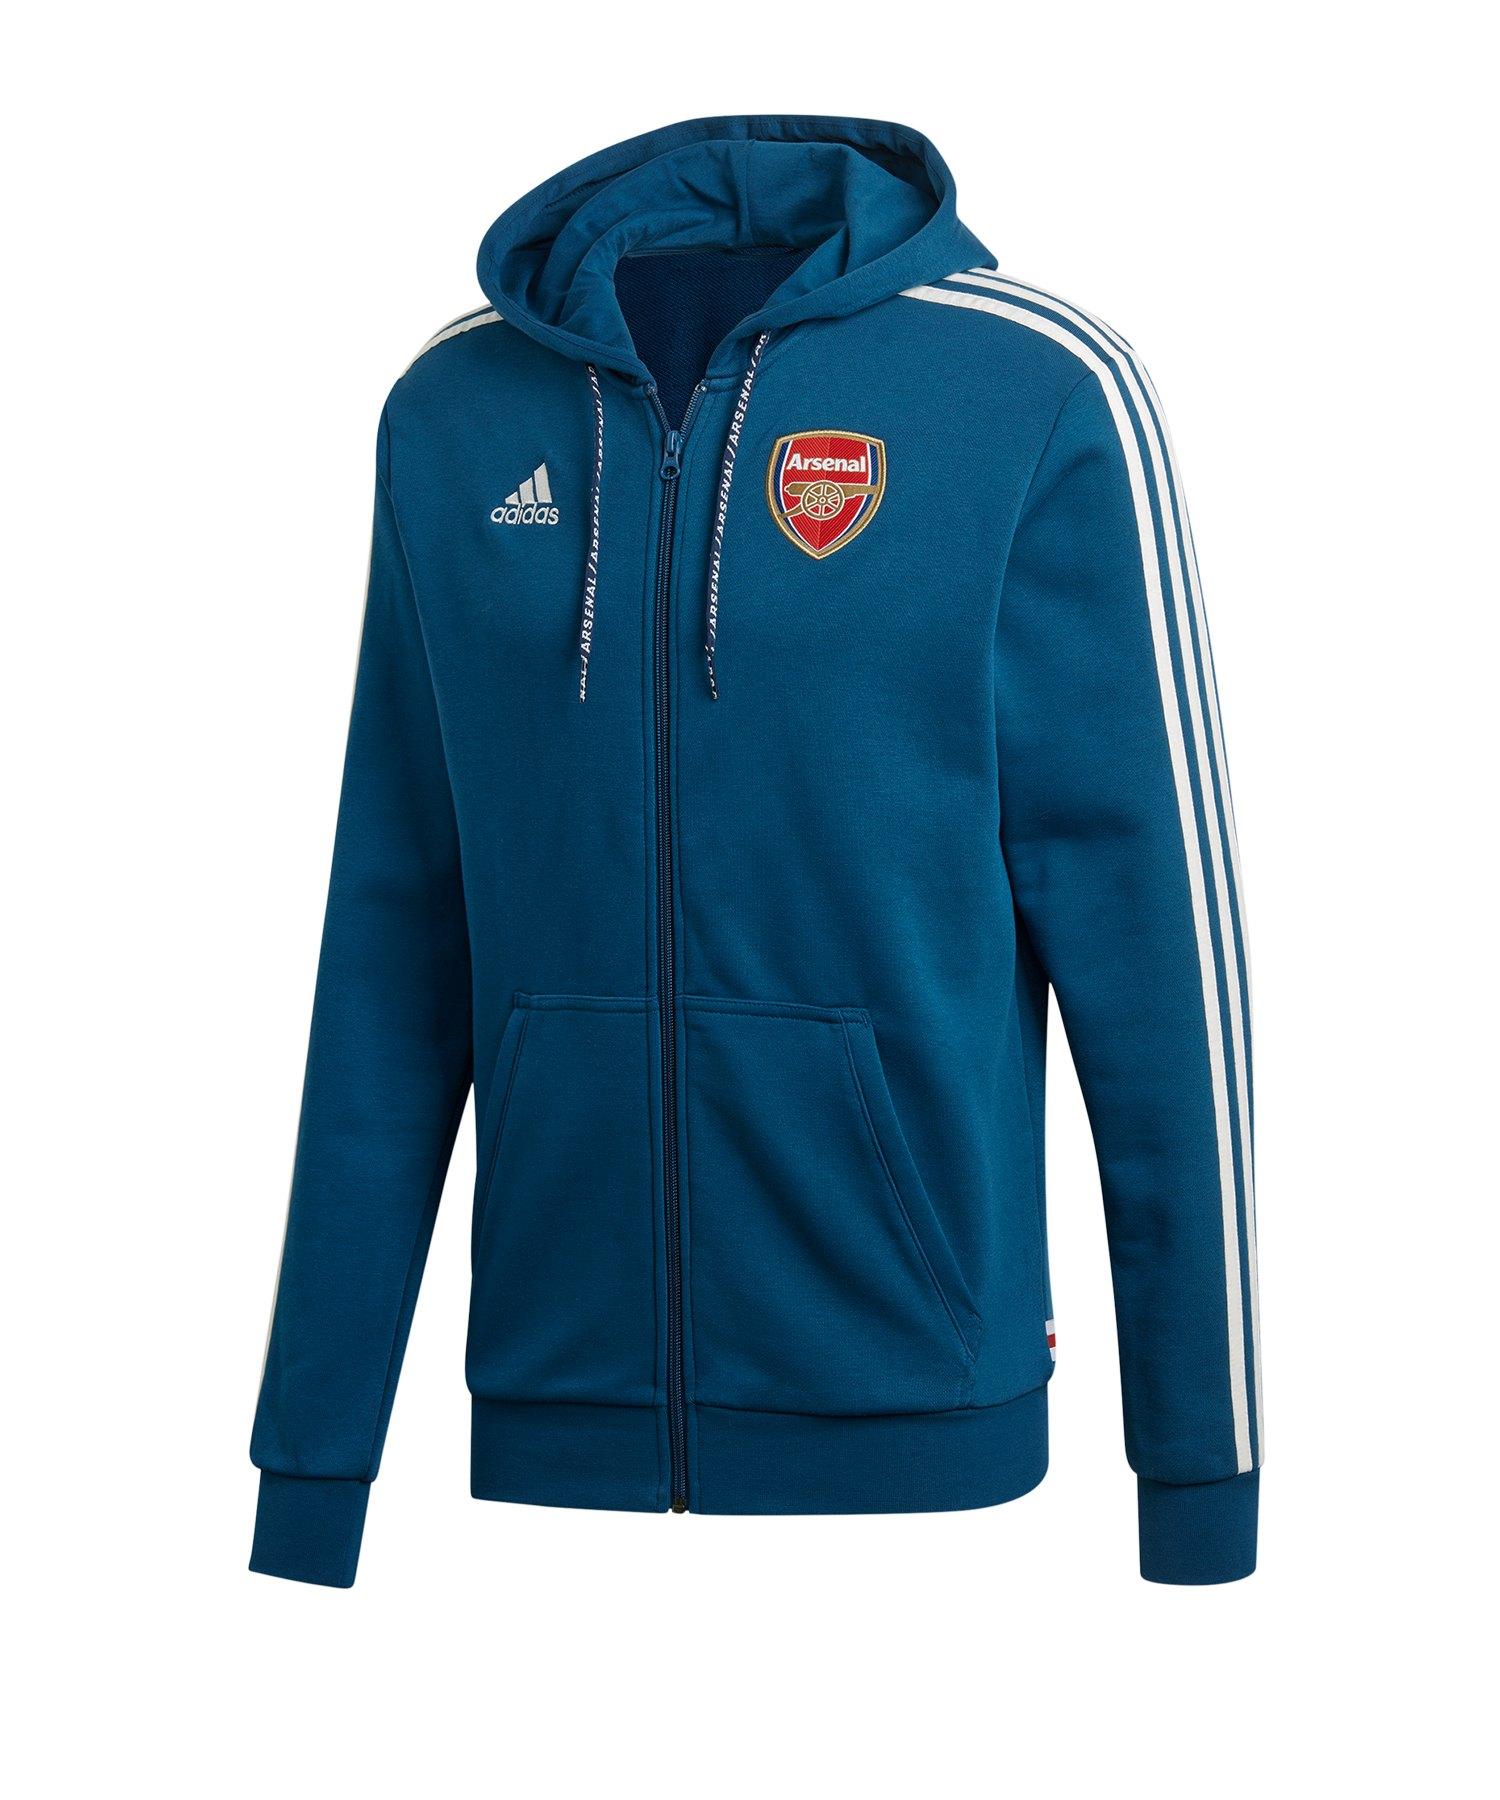 adidas FC Arsenal London Kapuzenjacke Blau - blau